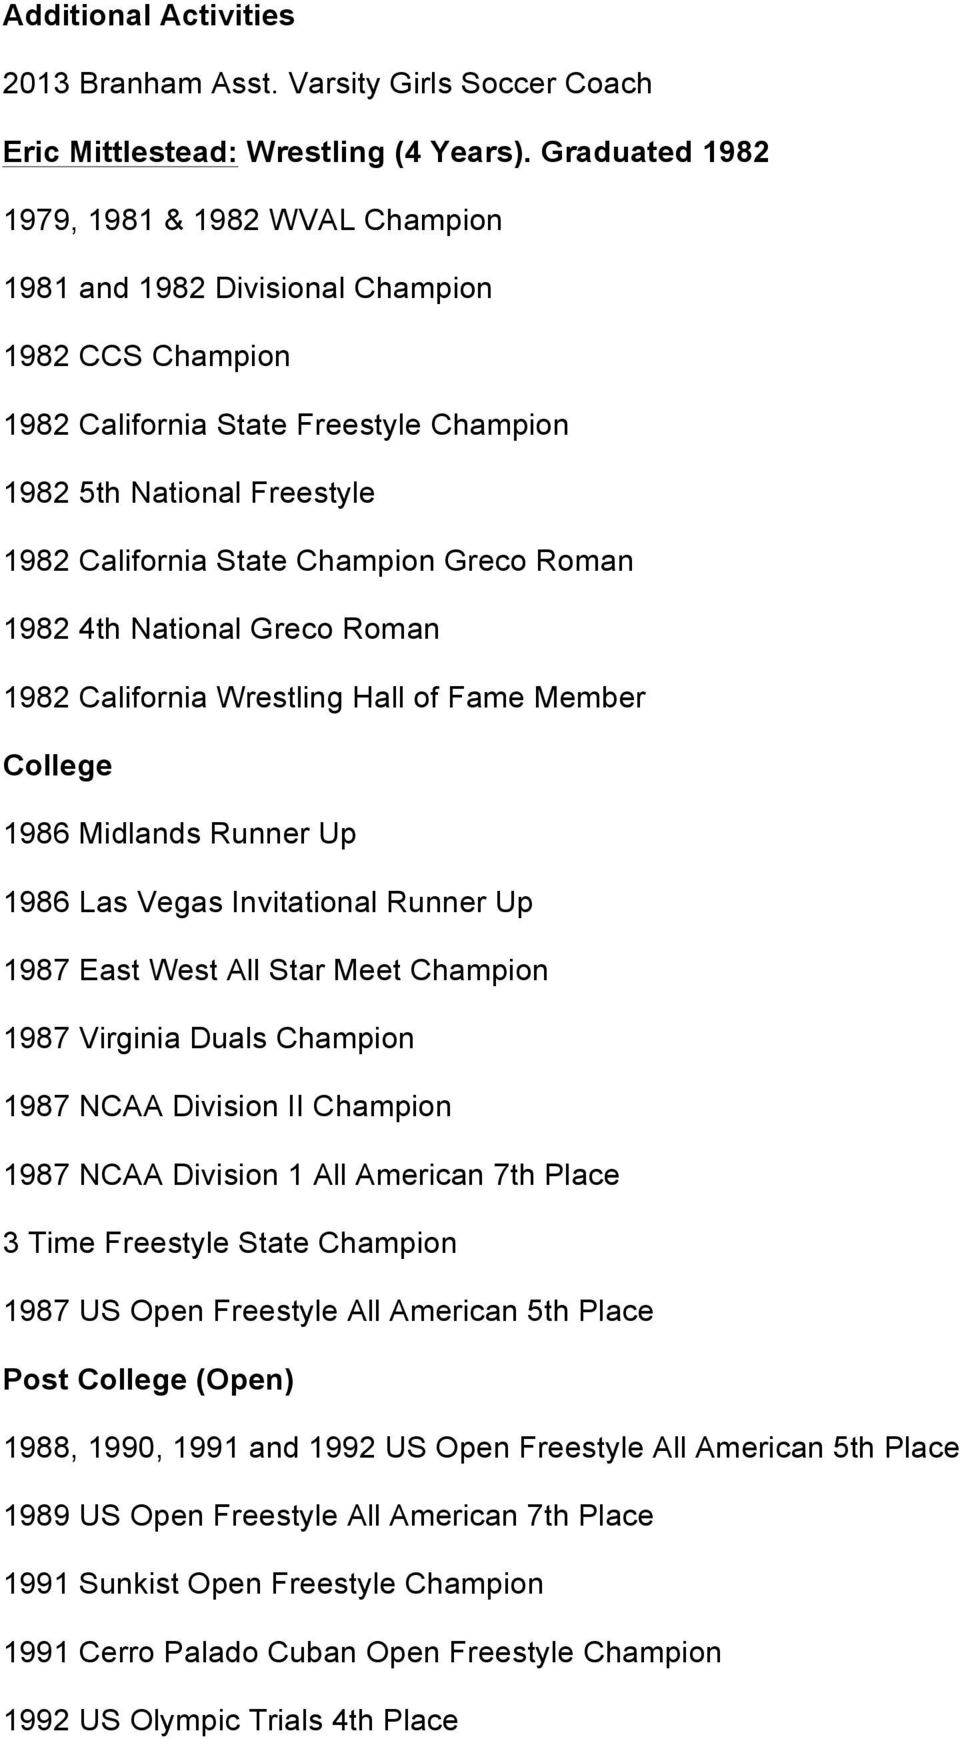 Greco Roman 1982 4th National Greco Roman 1982 California Wrestling Hall of Fame Member 1986 Midlands Runner Up 1986 Las Vegas Invitational Runner Up 1987 East West All Star Meet Champion 1987